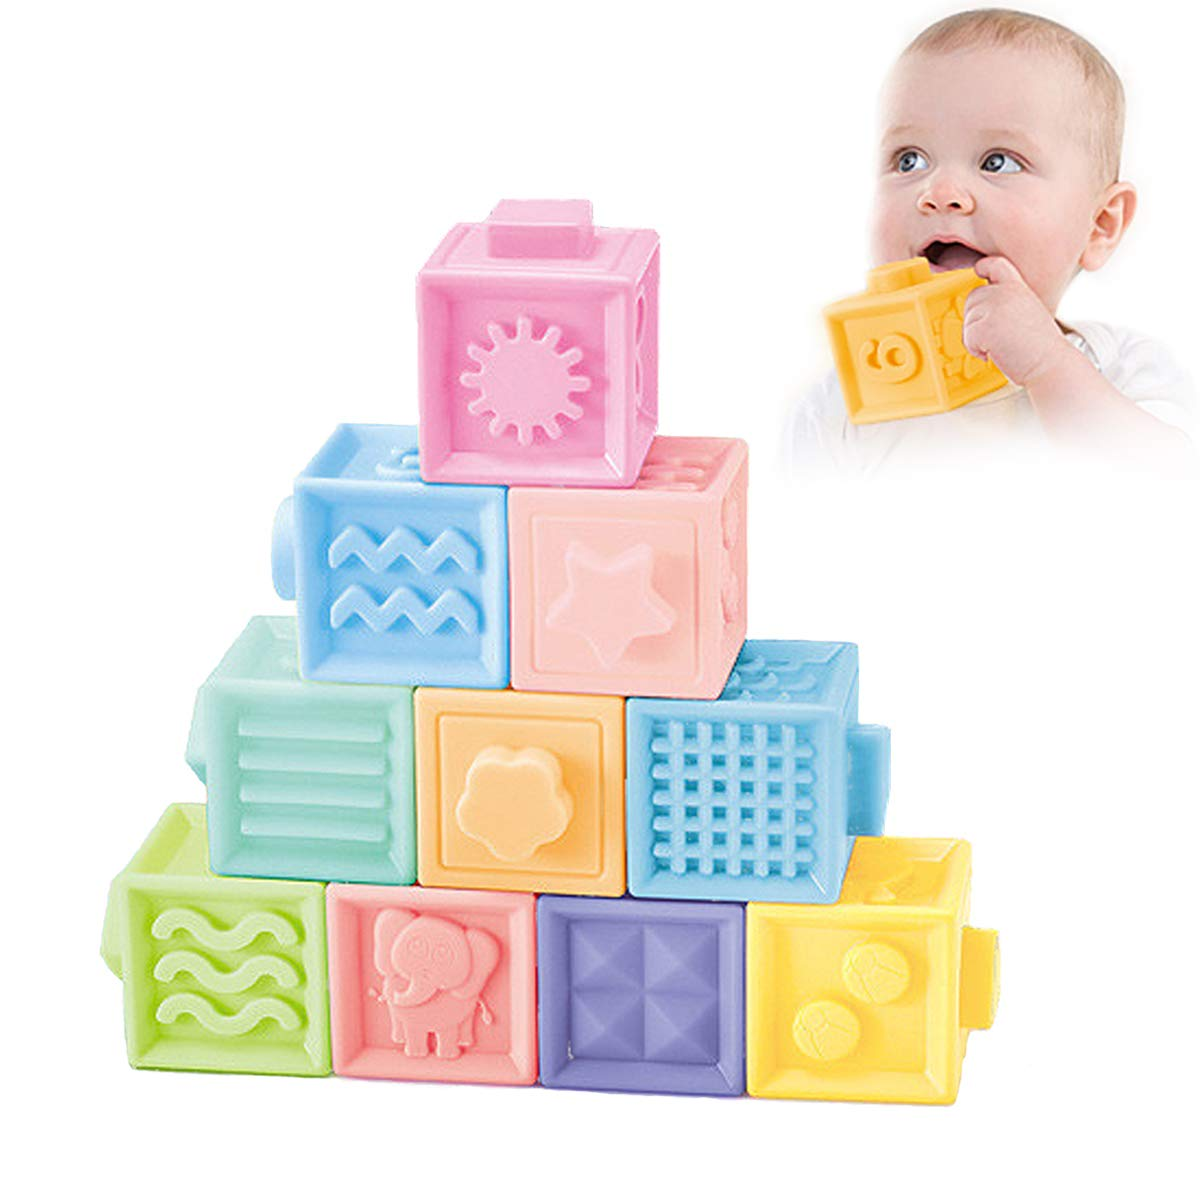 NUOEY Baby Blocks Soft Building Blocks Toys Early Educational Squeeze Stackable Baby Toys Play with Number,Animals,Textures and Matching Game for Boys and Girls